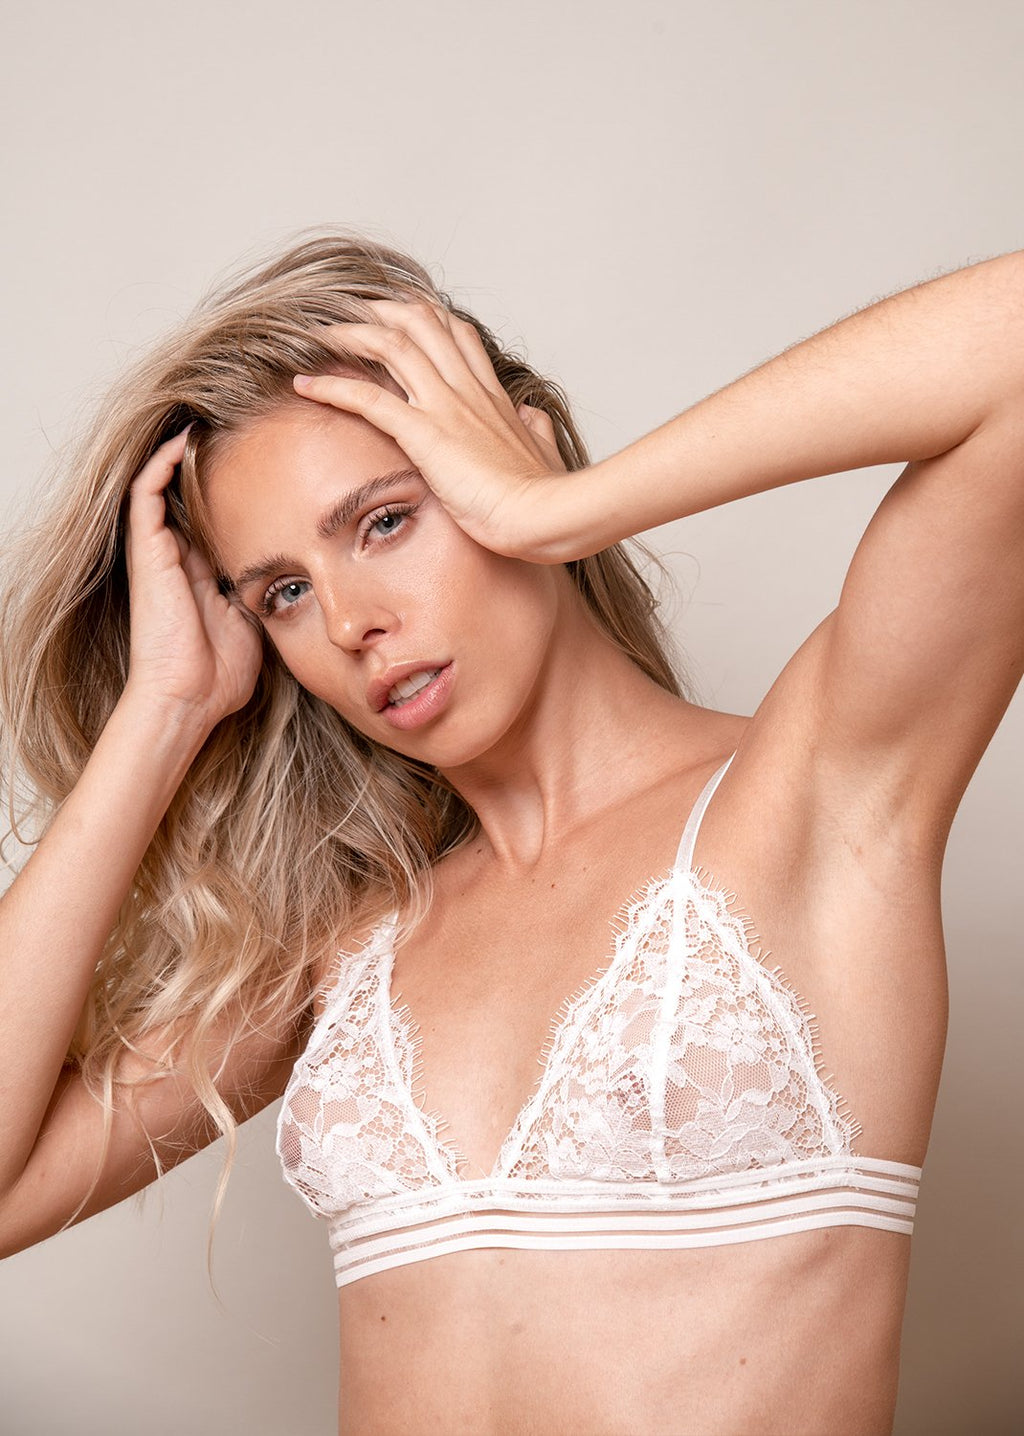 Michèle Ma Belle Bra. White Lace Bralette. Triangle Bra with striped underband. LEONESSA Lingerie